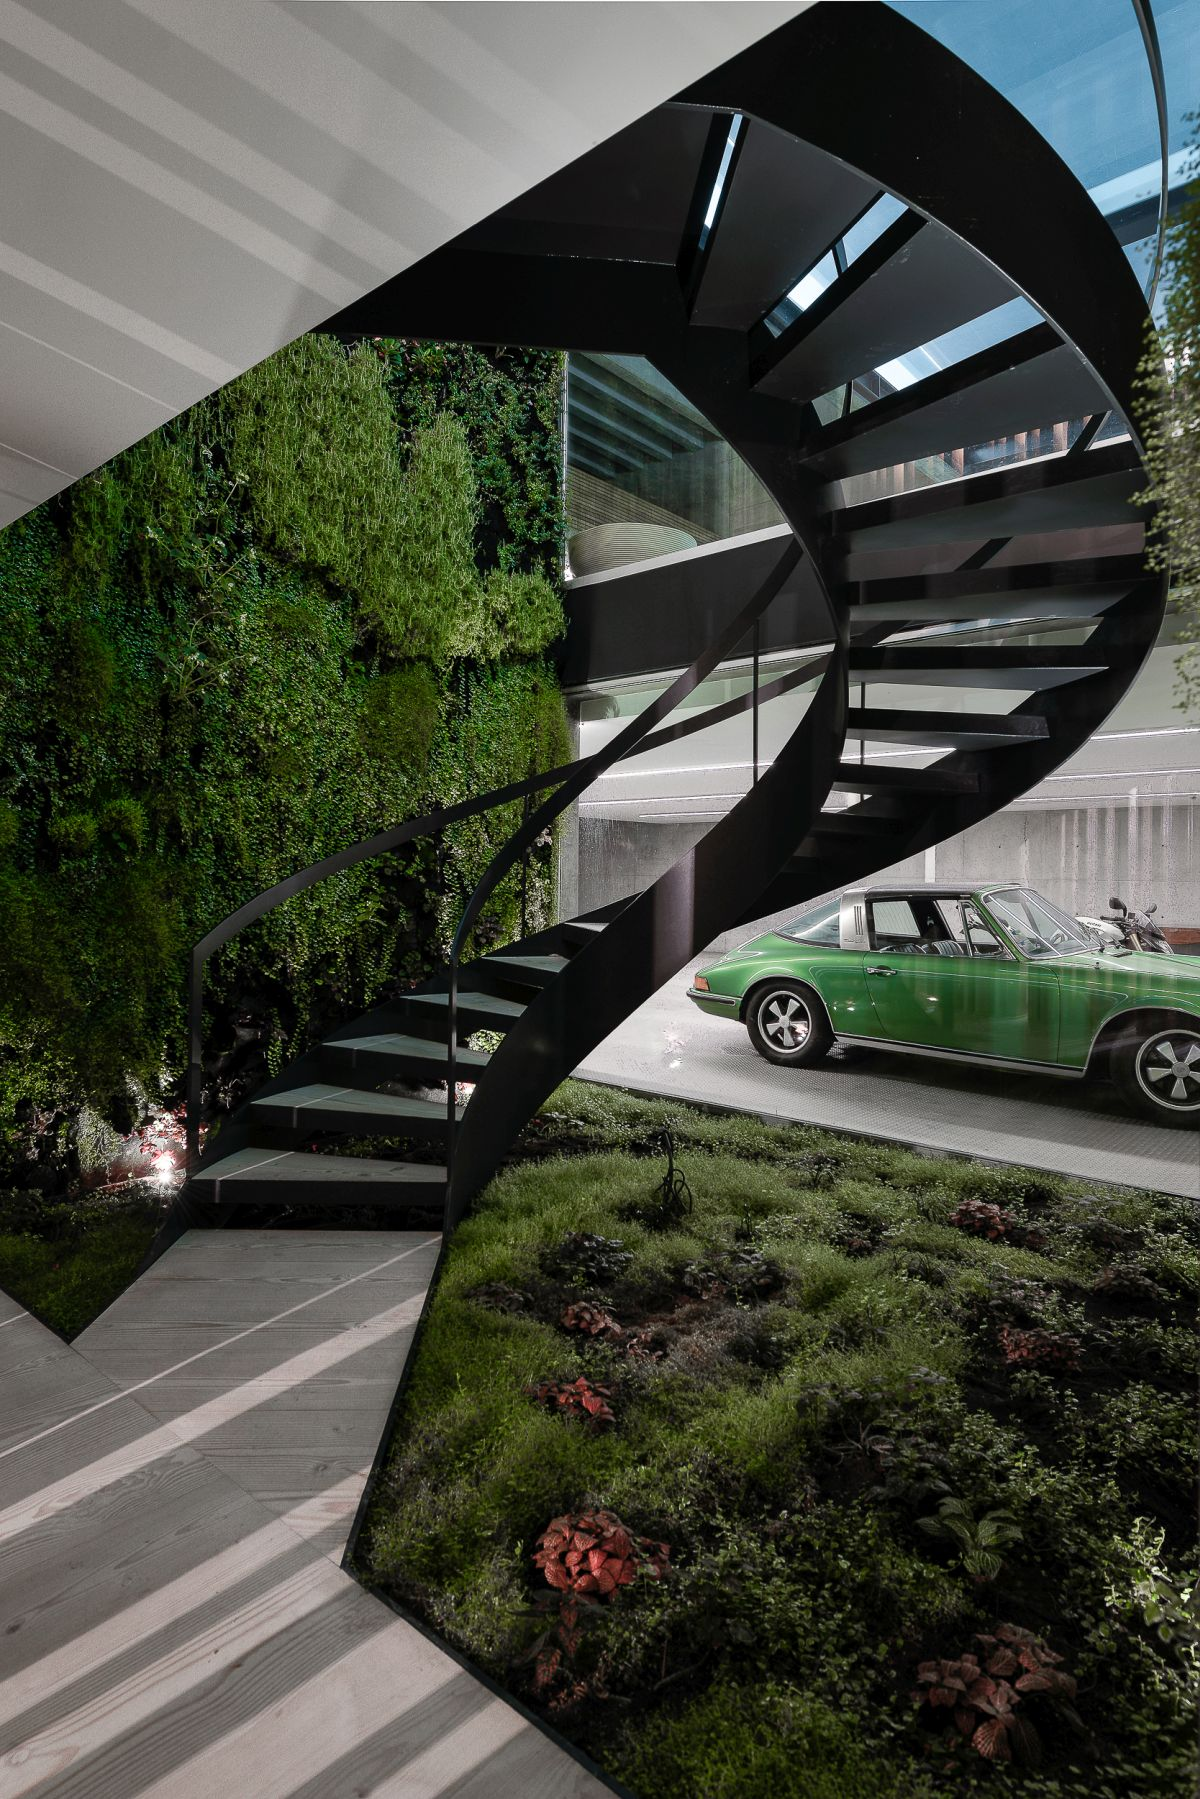 Low, natural plantings between the house and garage enhance the glass feature.